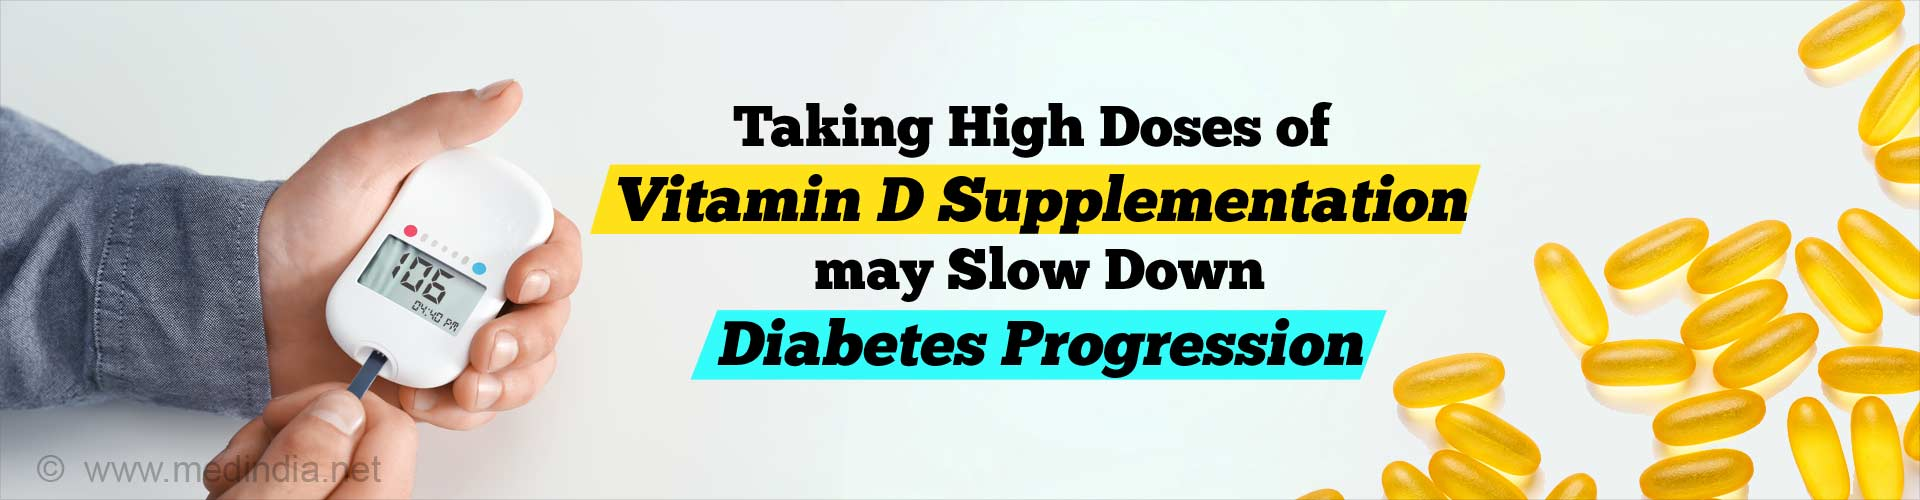 Vitamin D Supplementation can Slow Progression of Early Diabetes